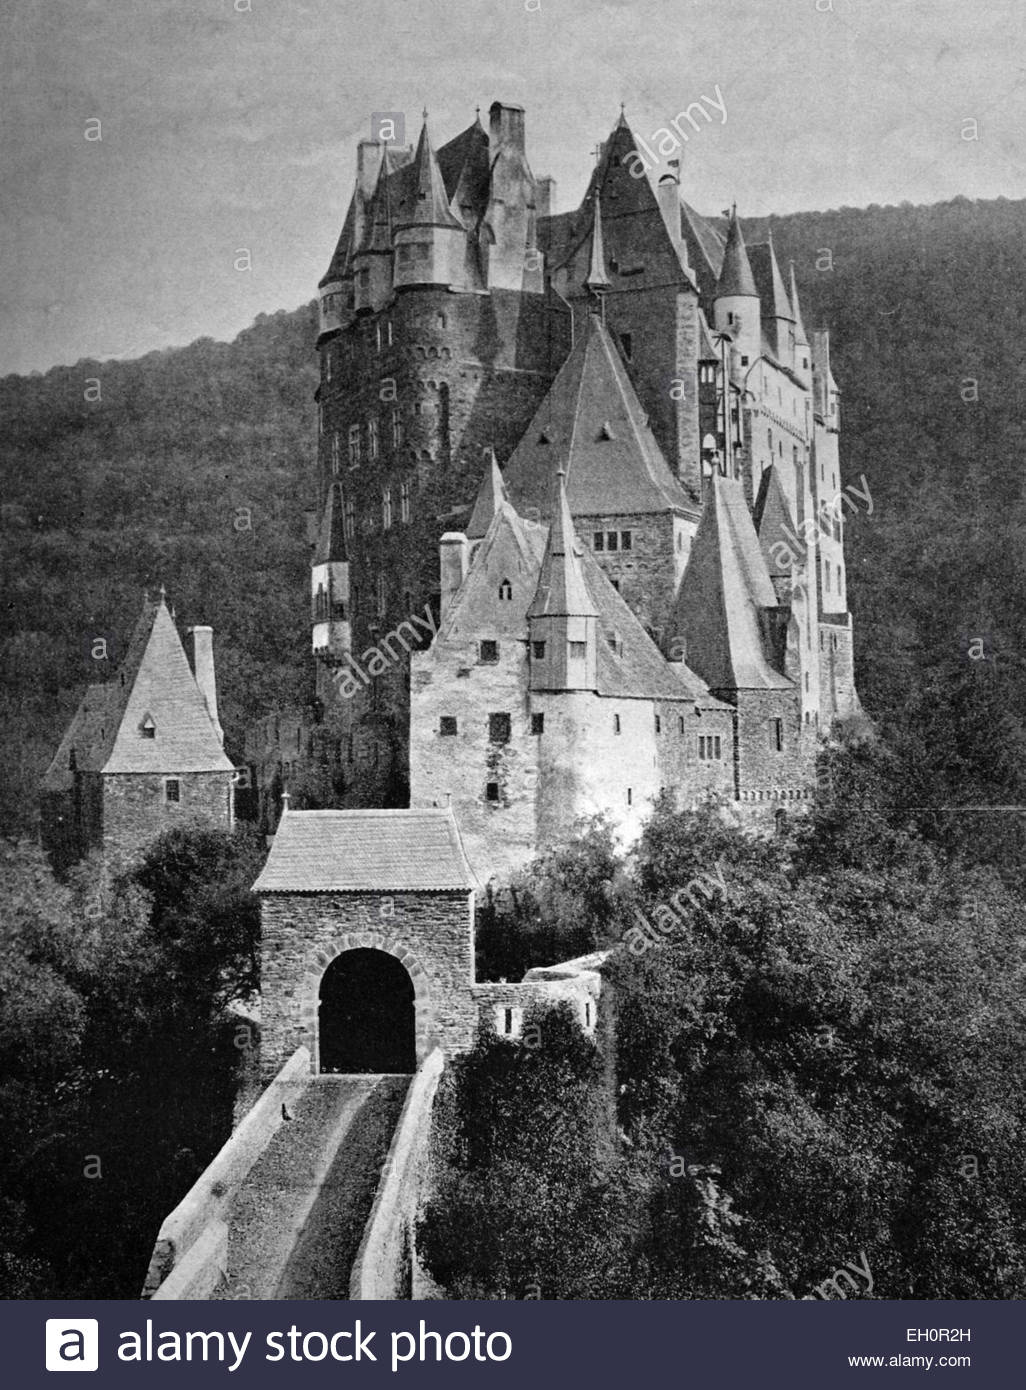 Burg Black and White Stock Photos & Images.